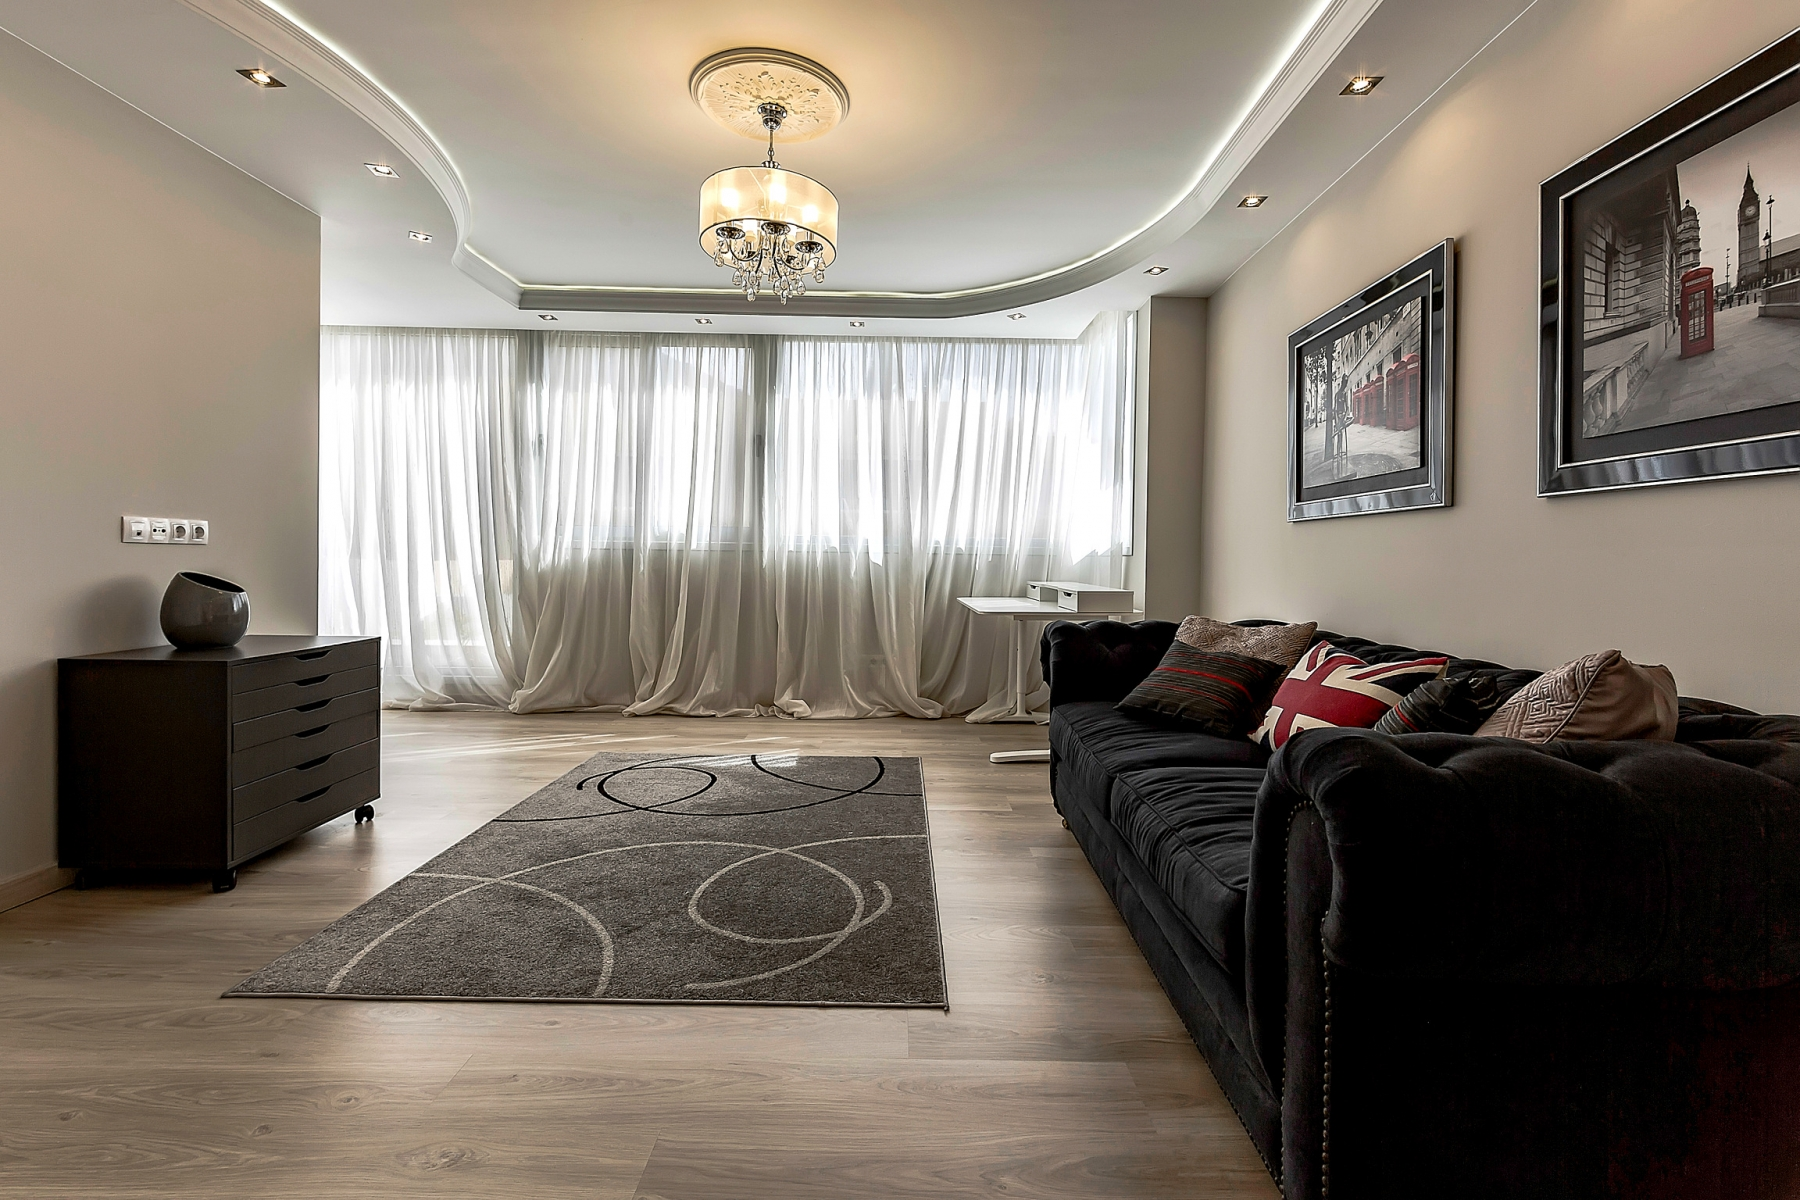 Properties for Sale in Tenerife, Canary Islands, Spain   SylkWayStar Real Estate. Luxury villa in the fashionable area of the south of the island of Tenerife – Madroñal.. Image-22738